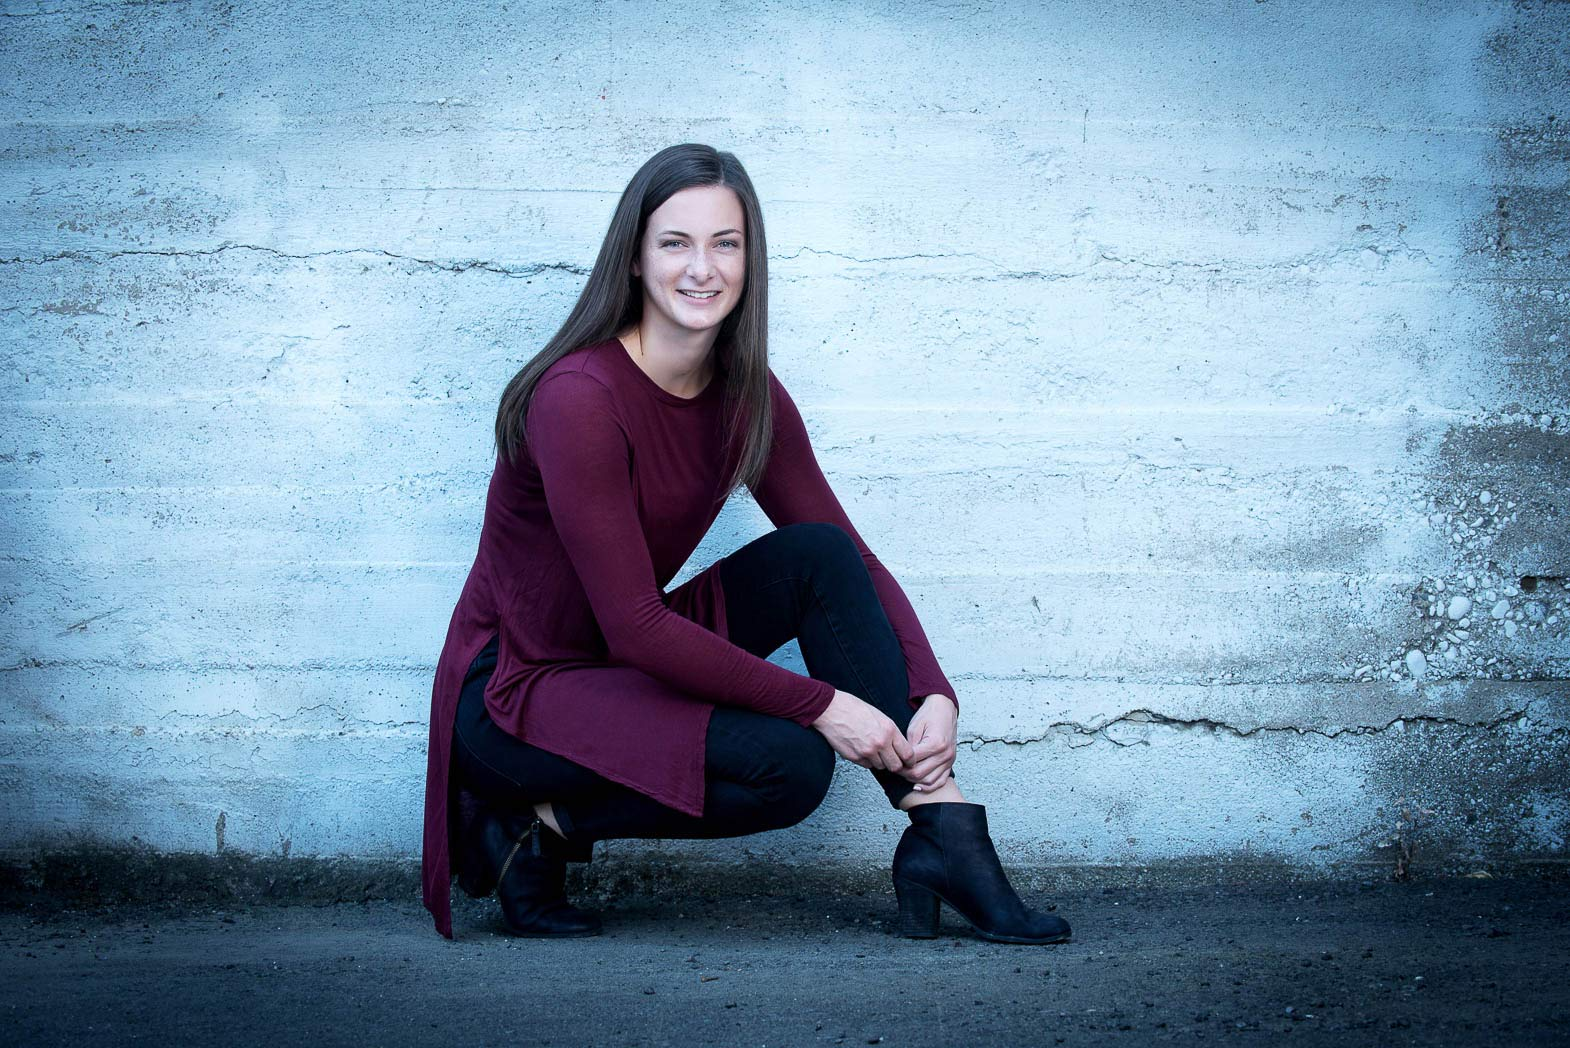 fashionable senior picture of girl crouched down smiling